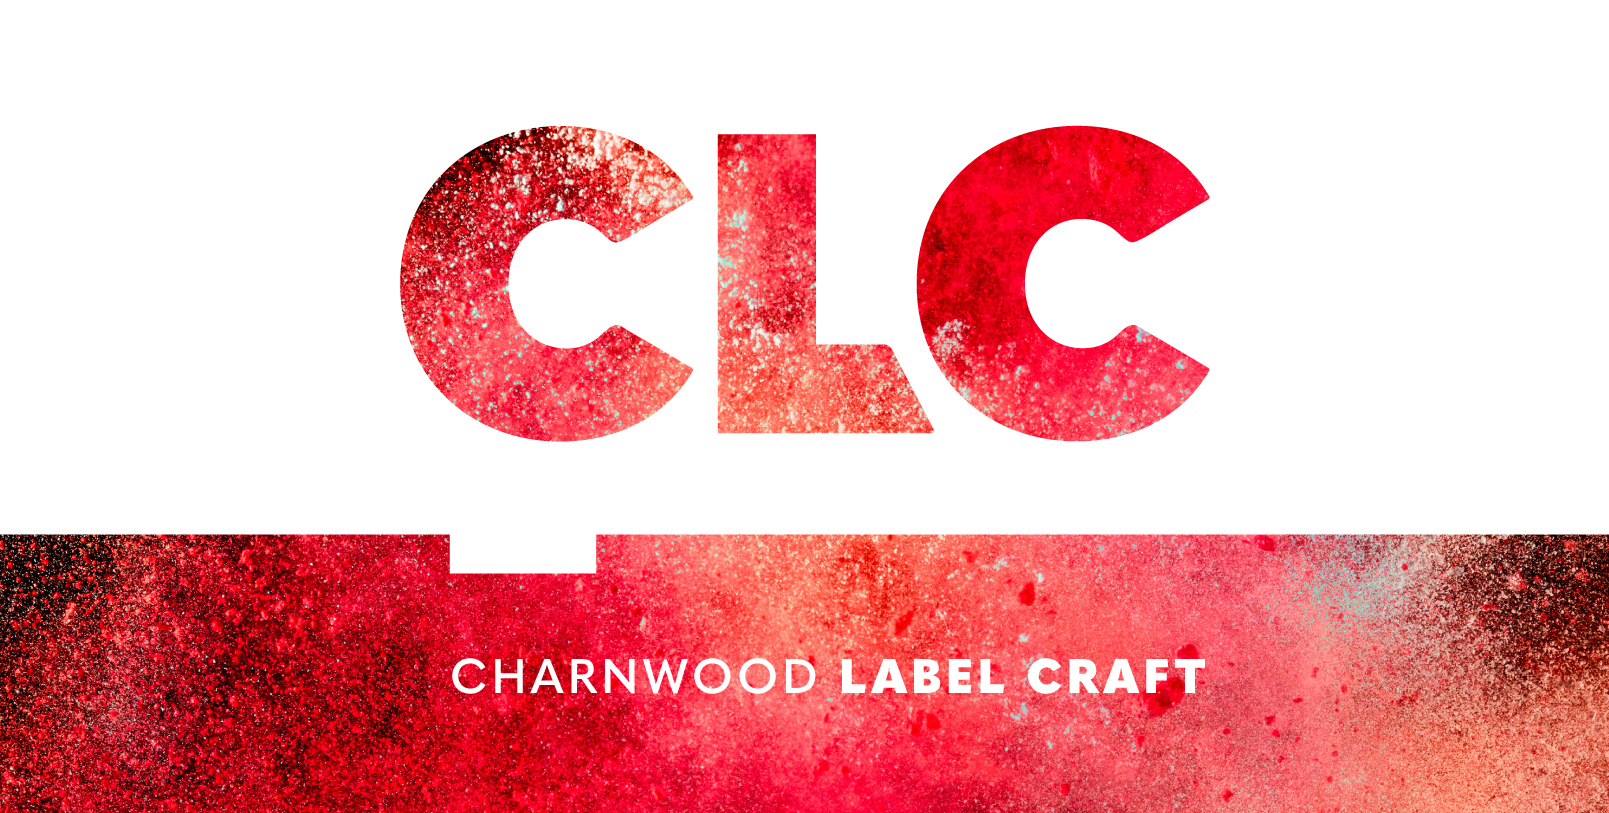 Charnwood Label Craft brand identity